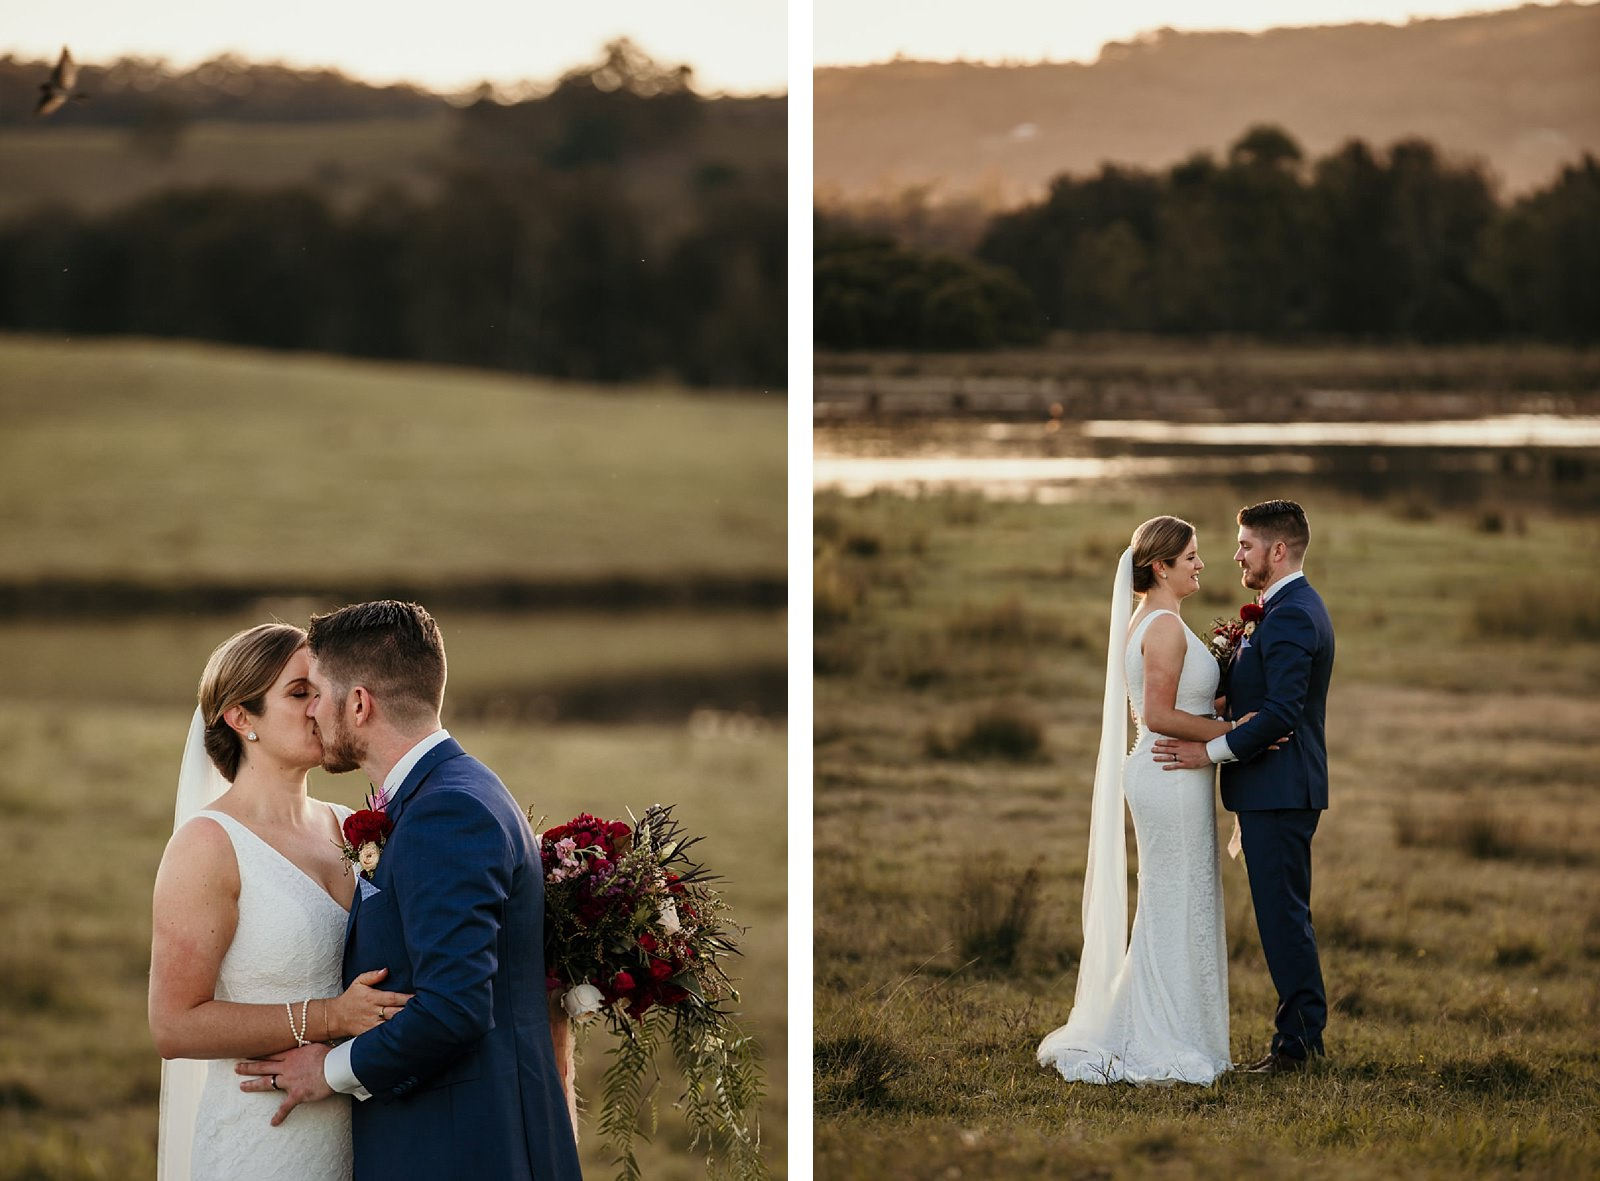 097Hunter Valley Wedding Photographers Bryce Noone Photography at Tocal Homestead Wedding Venue.jpg